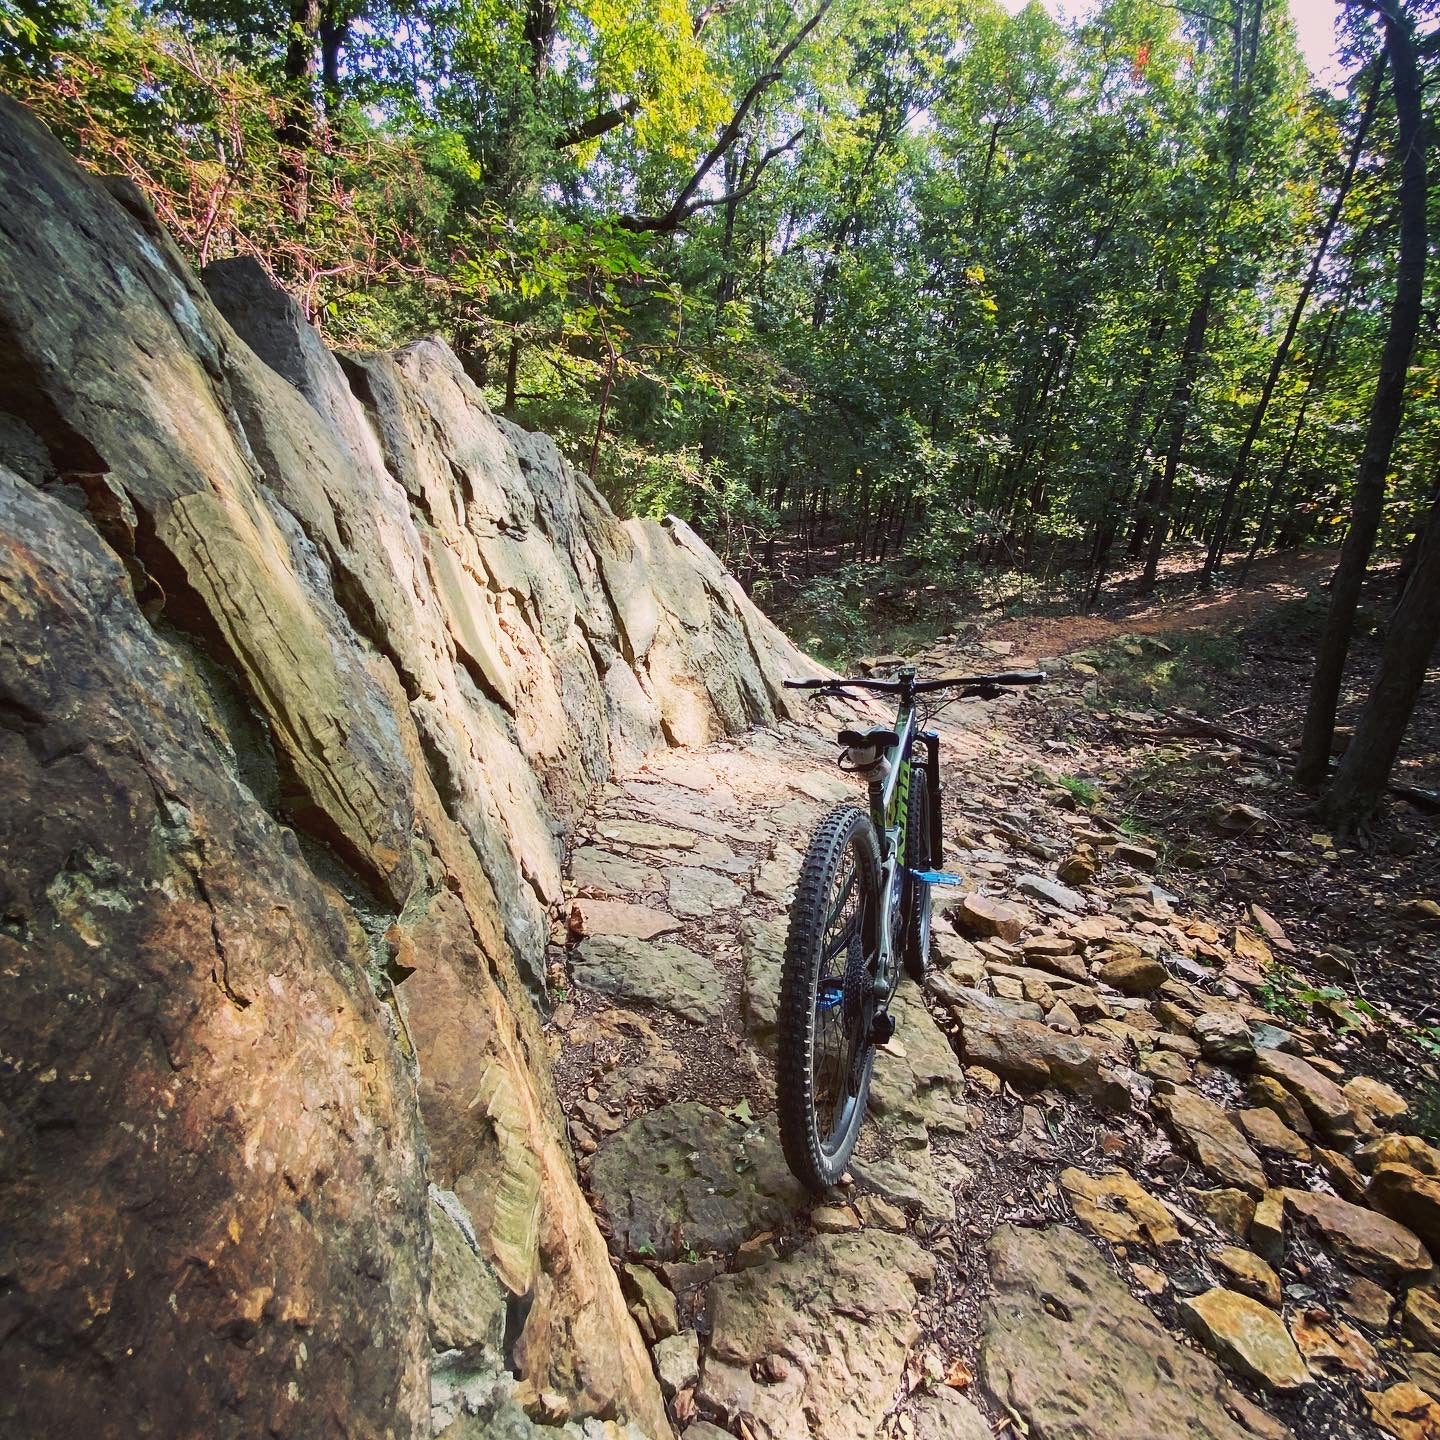 Hand-crafted stone slab wall ride at Fitzgerald Mountain Trails, Springdale